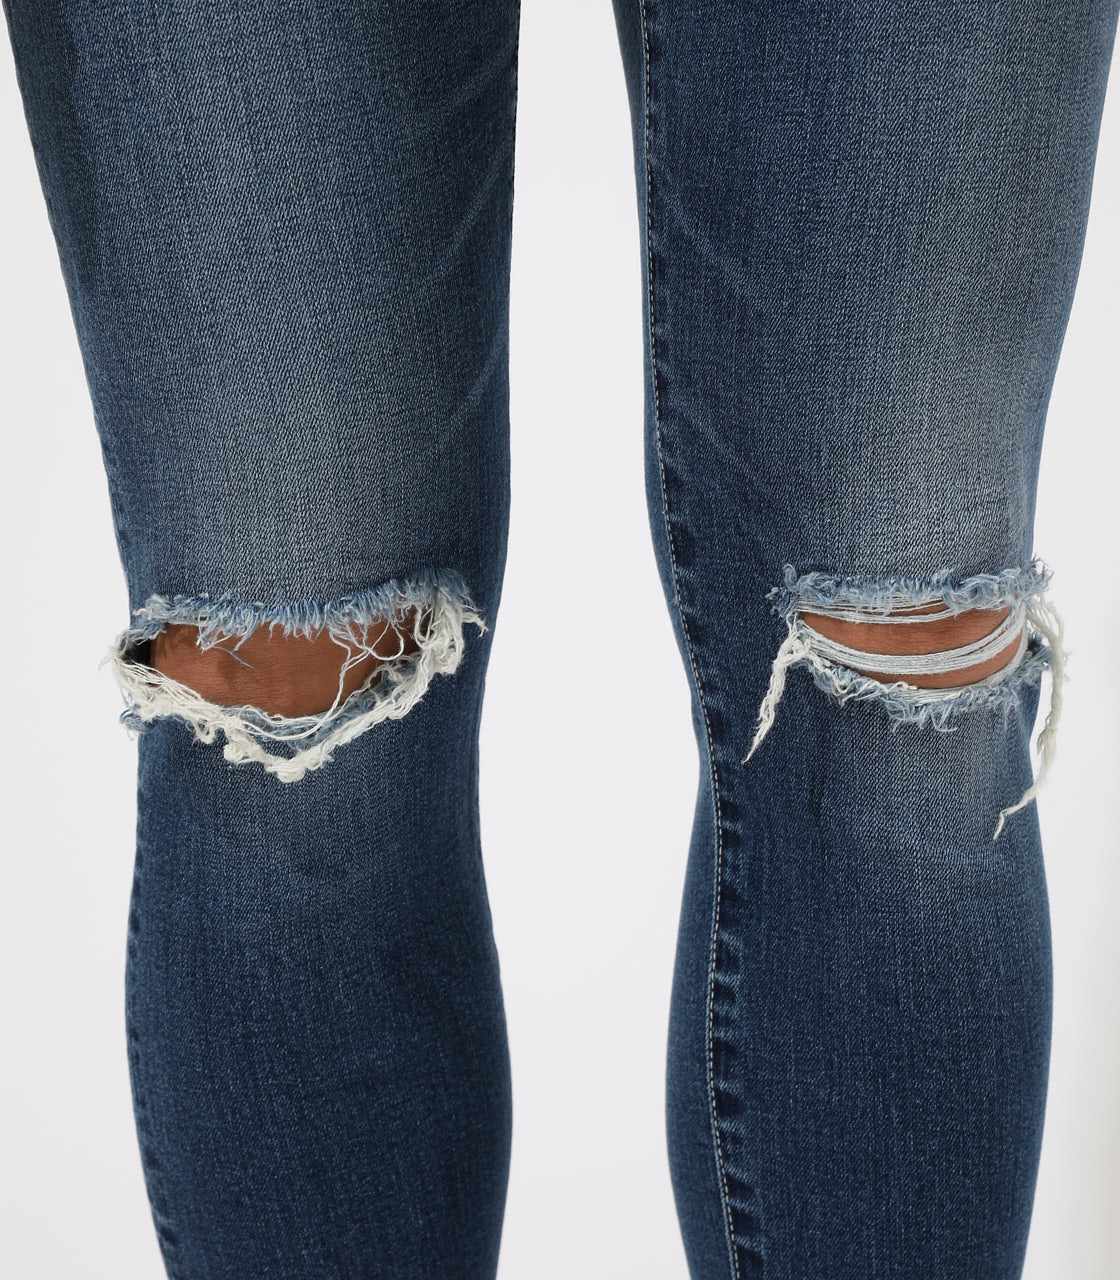 【AZUL BY MOUSSY】WHITE STITCH CRASH SKINNY 詳細画像 BLU 9